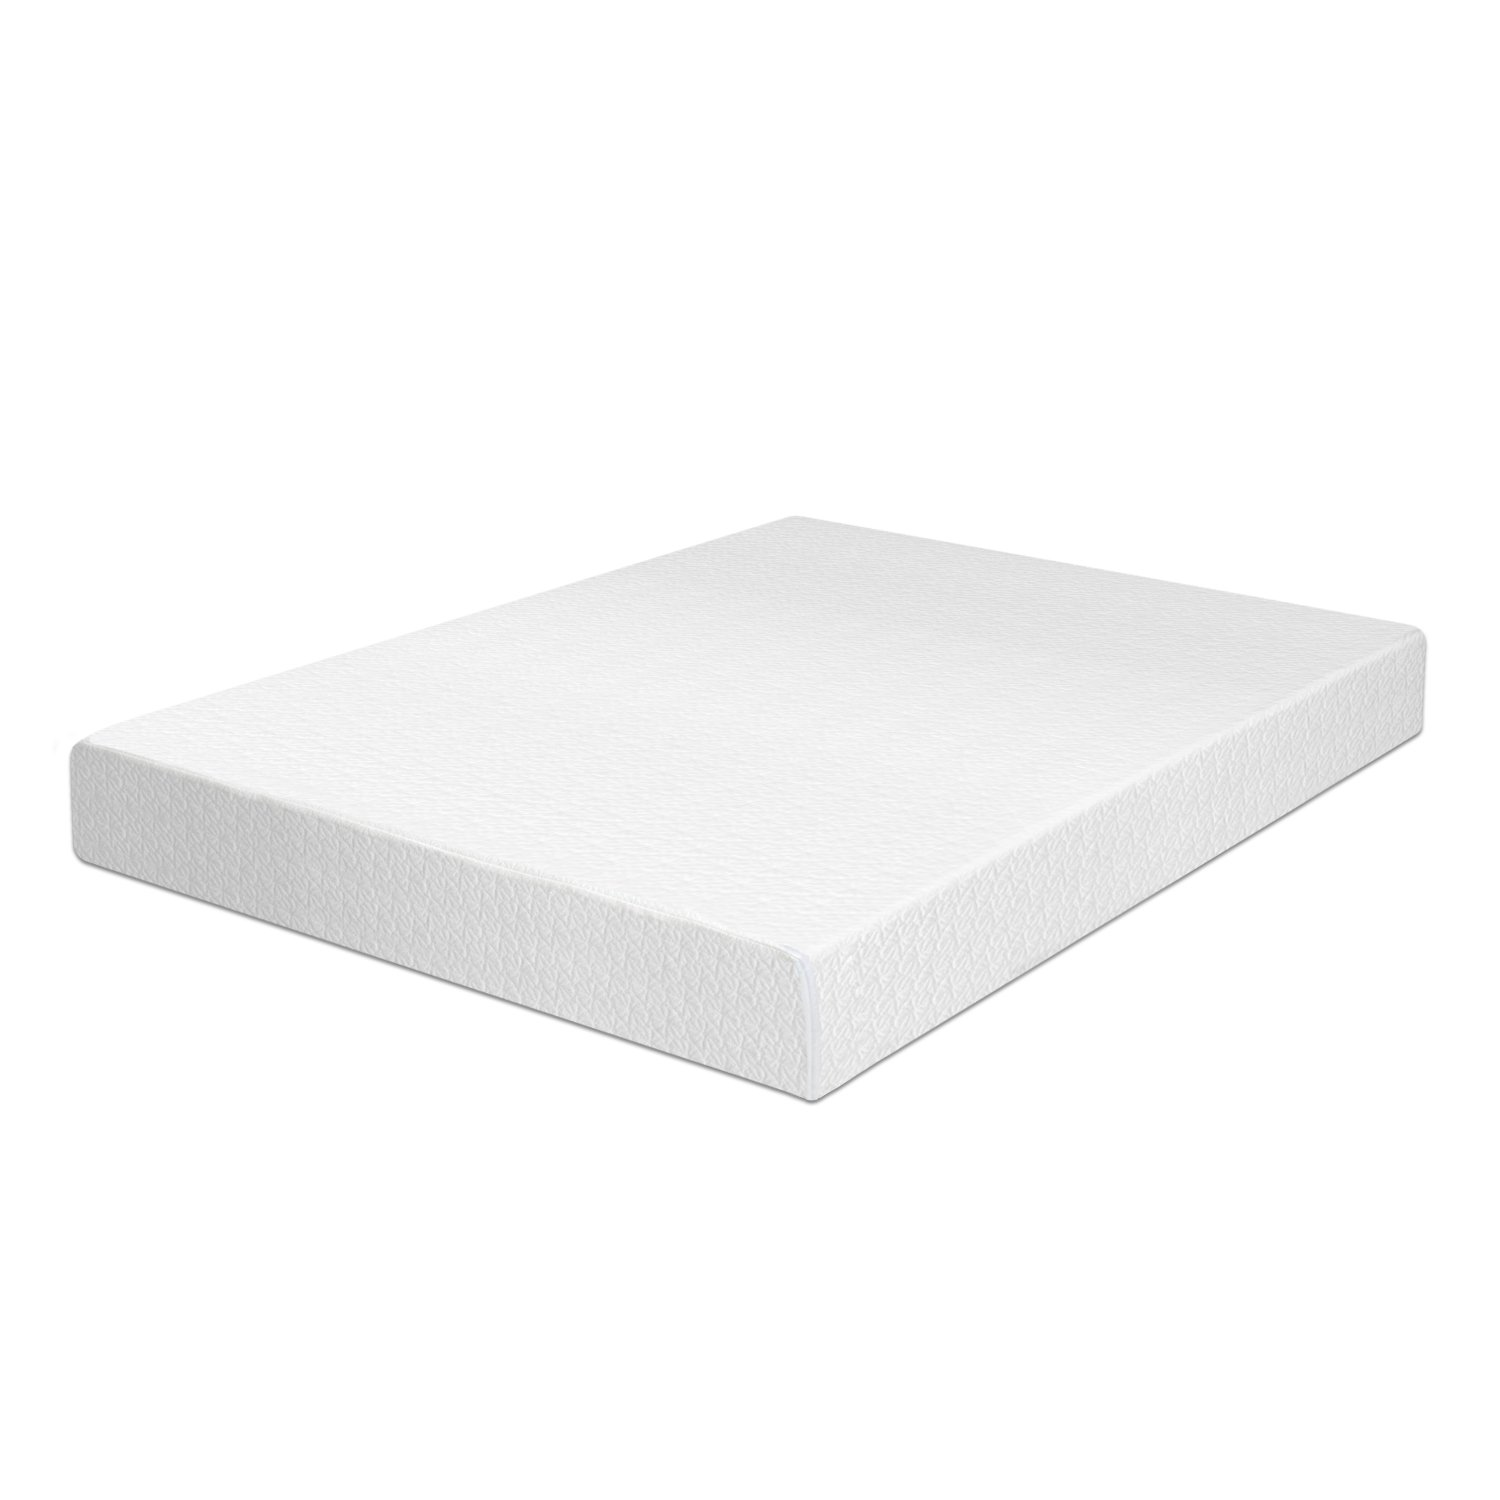 Best-Price-Mattress-8-Inch-Memory-Foam-Mattress-Review